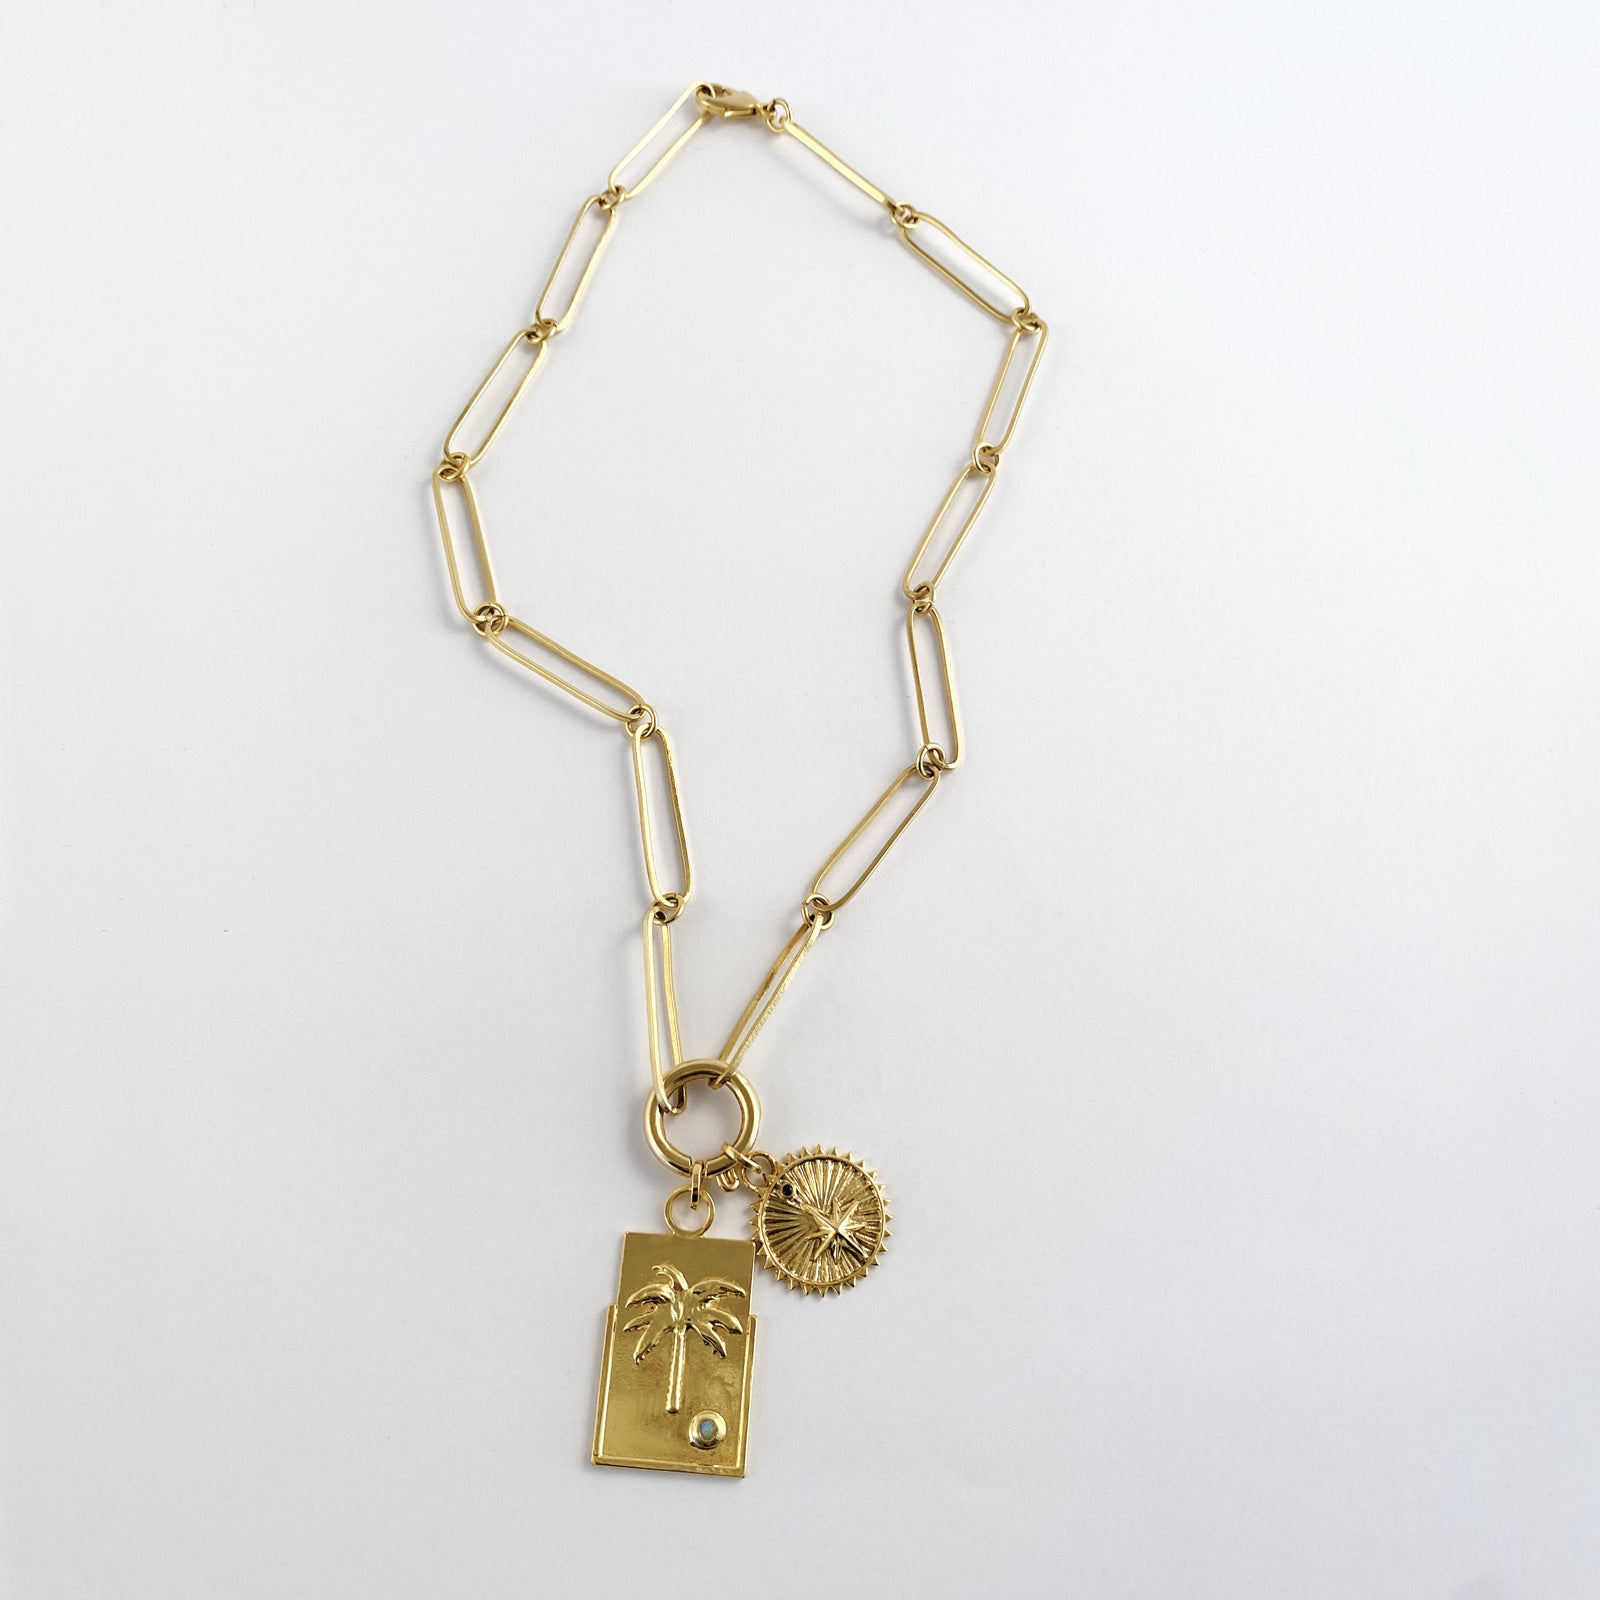 Gold plated  mystical chain elongated link and medallion ana buendia colombian jewelry